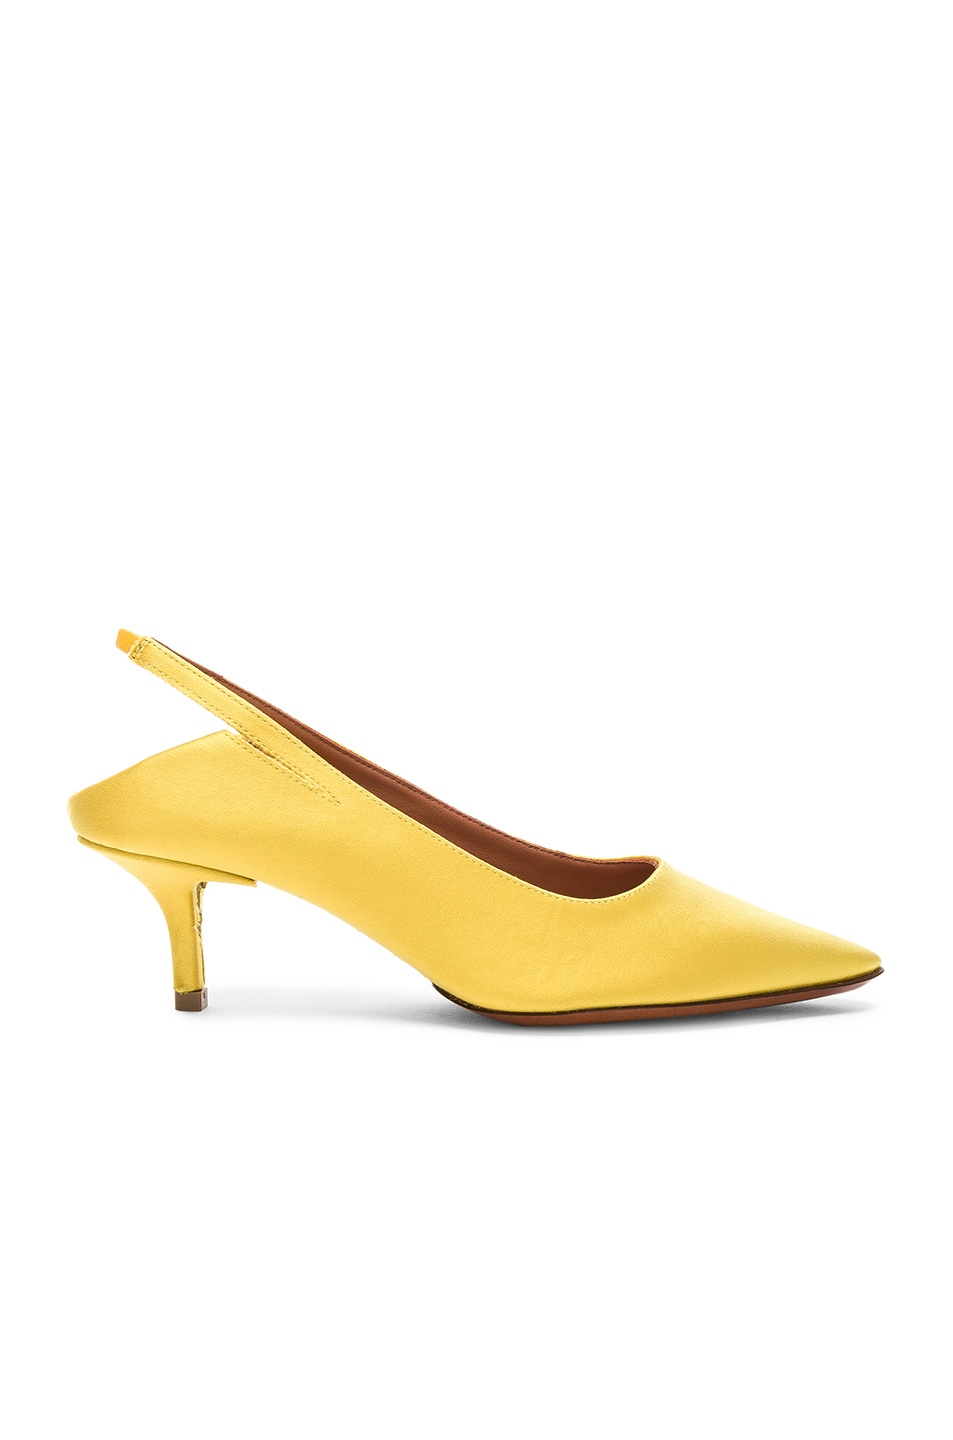 2a270a4e080 Image 1 of VETEMENTS Satin Slingback Kitten Heels in Yellow